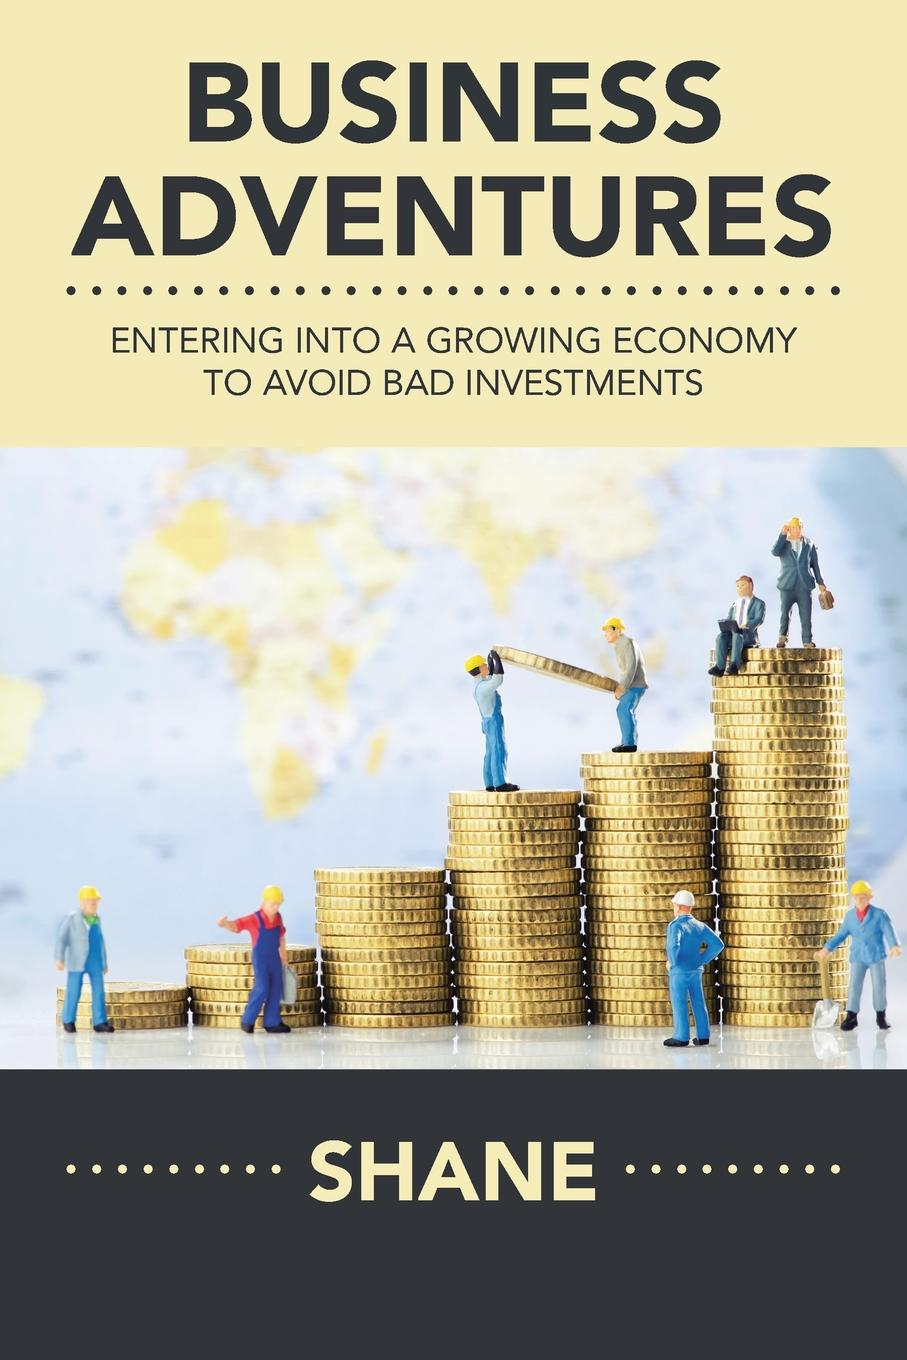 Business Adventures. Entering into a Growing Economy to Avoid Bad Investments We have been introduced to a growing economy in our daily life's...